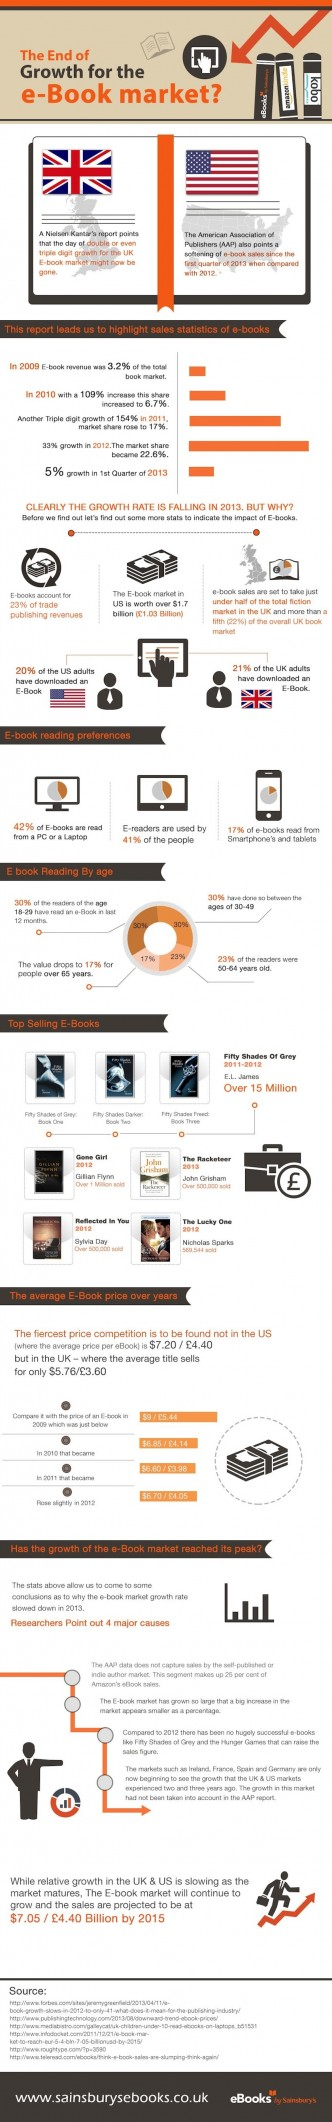 The end of ebook market growth - infographic